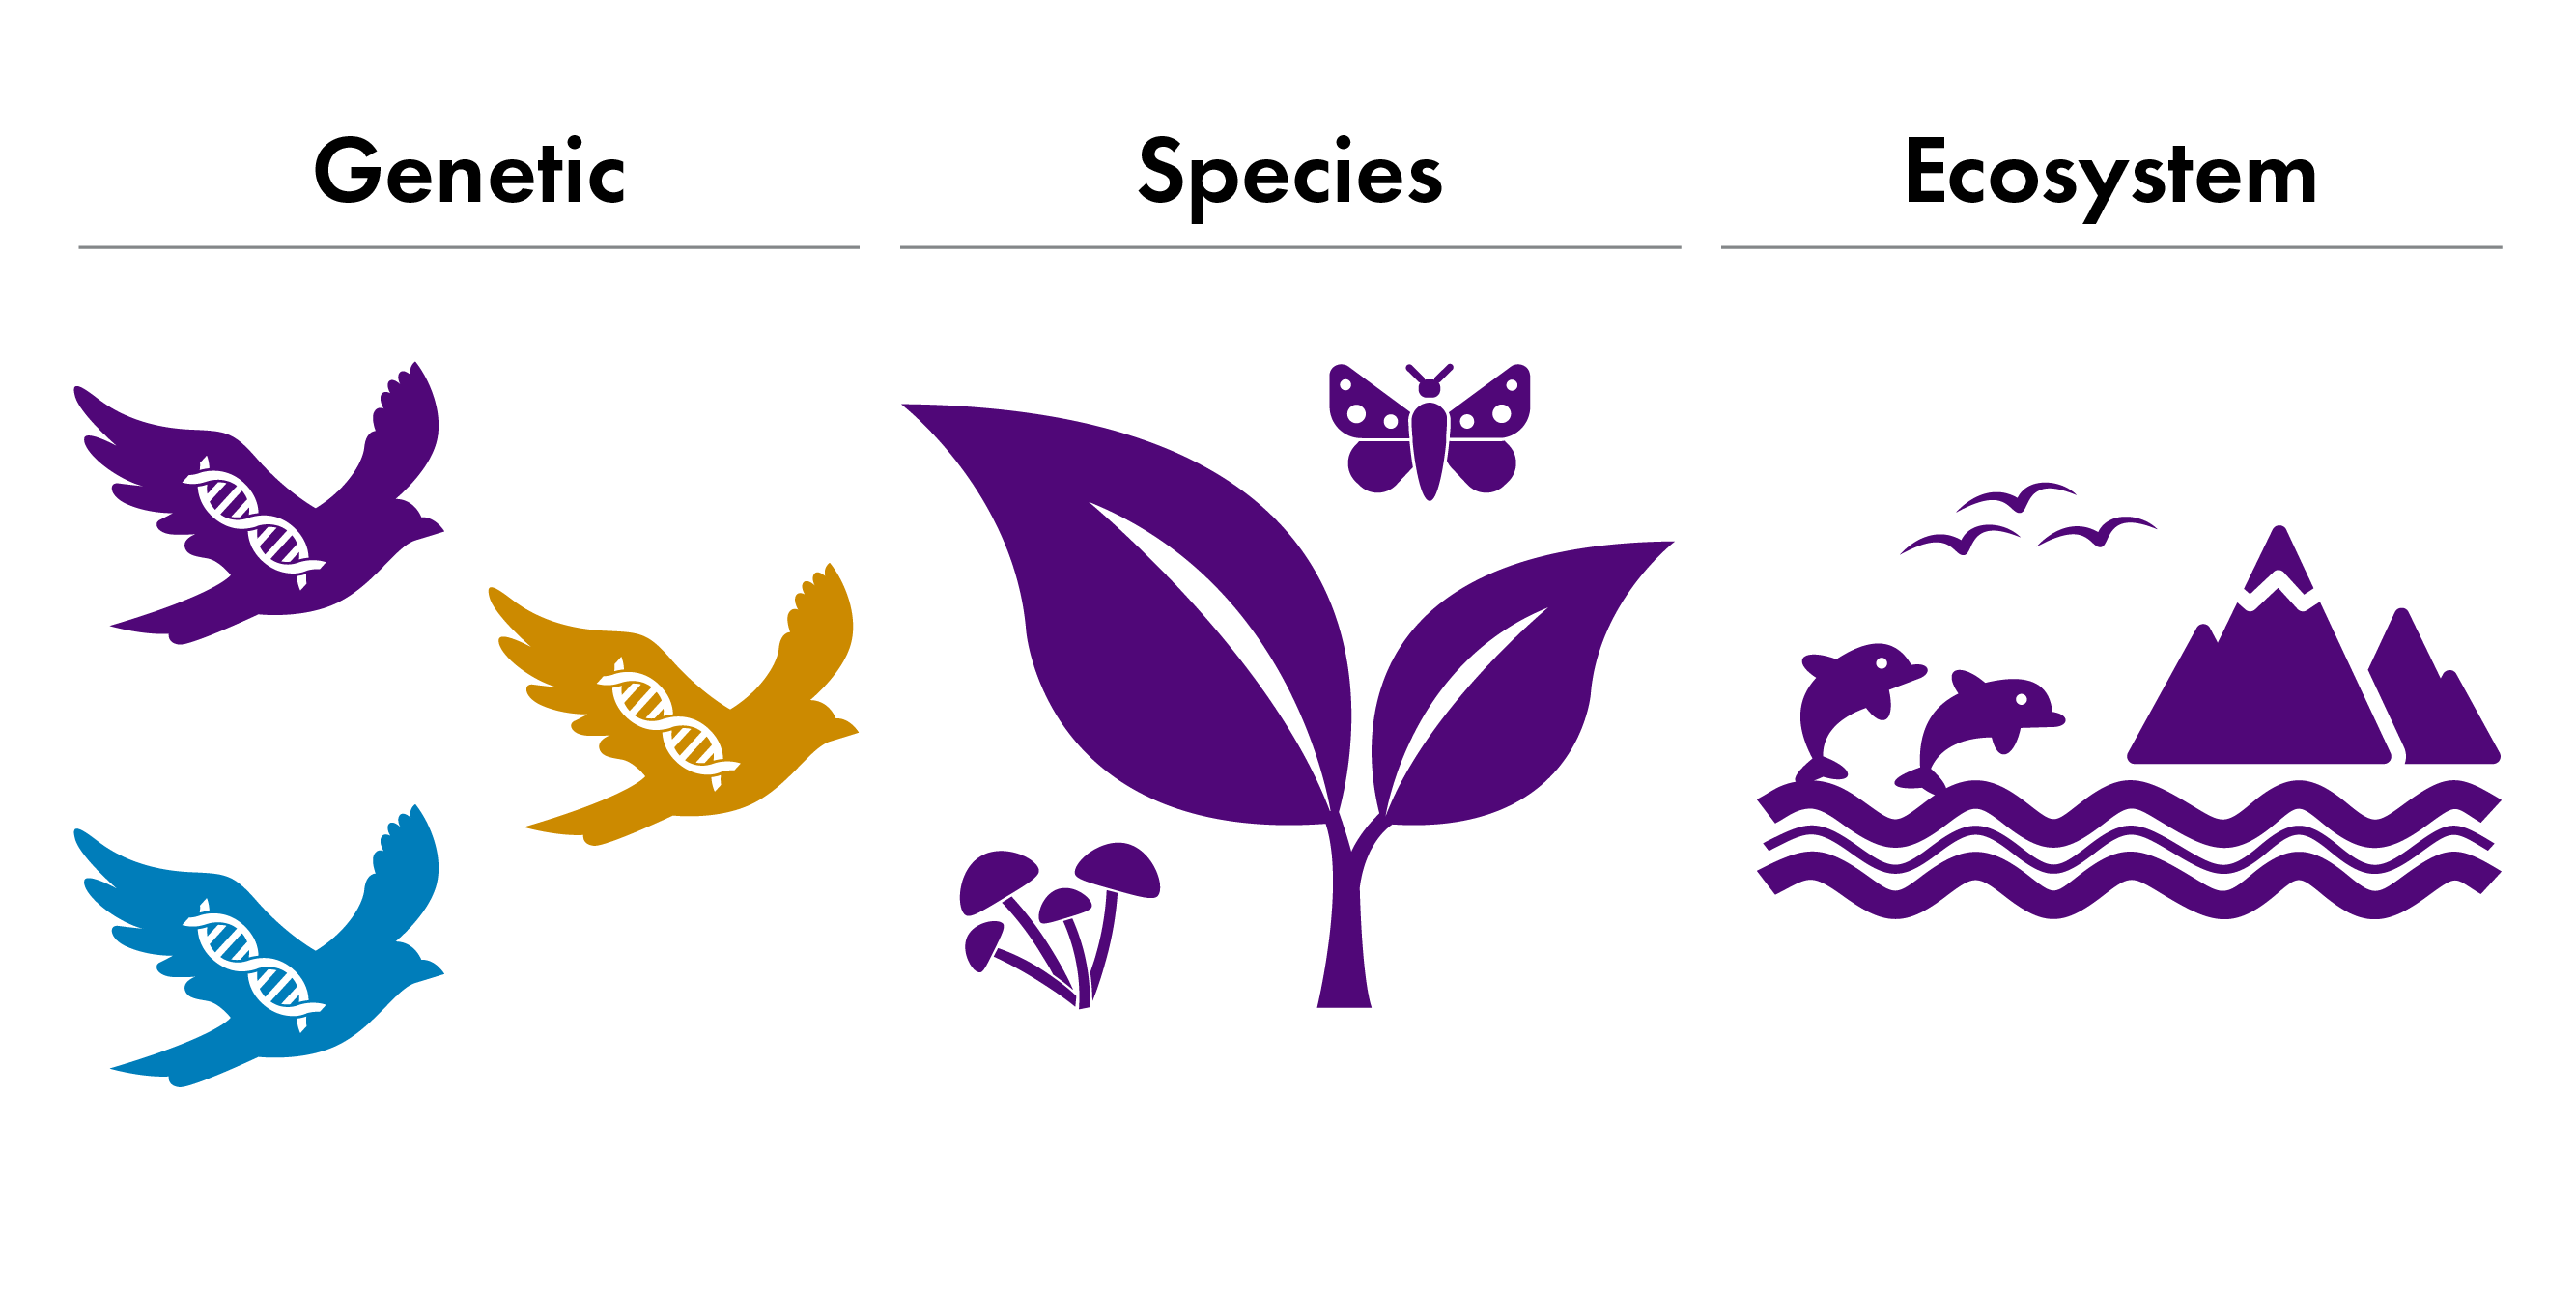 Image showing genetic diversity, diversity between species, and diversity of ecosystems. Together these three levels of variation are known as 'biodiversity'.